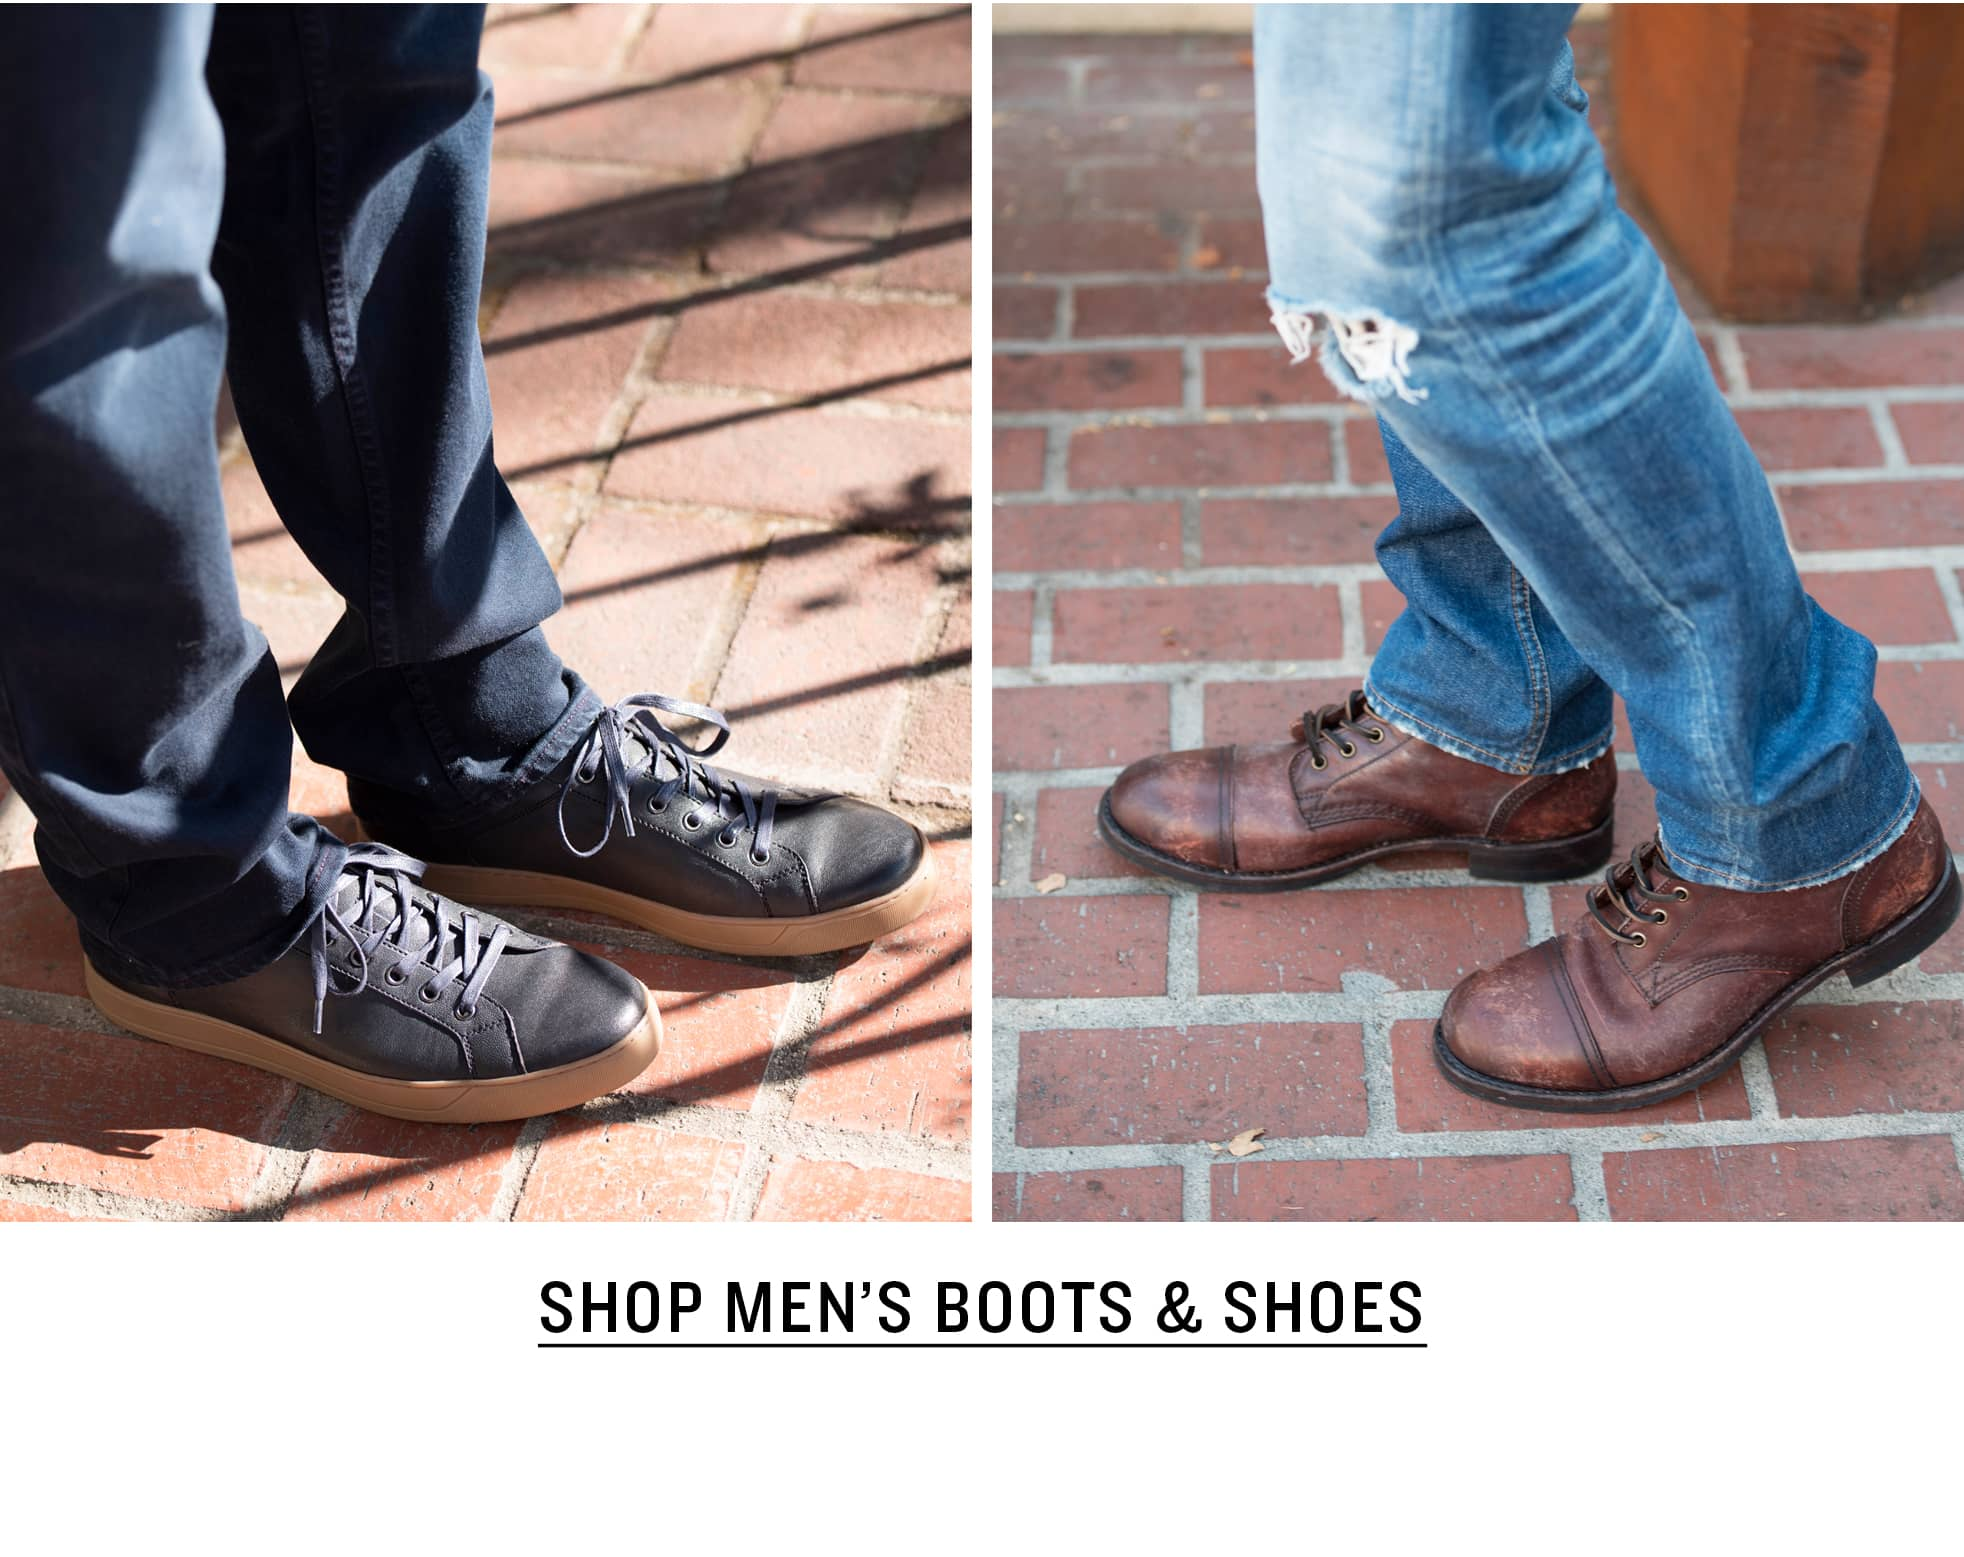 Shop Men's Boots & Shoes